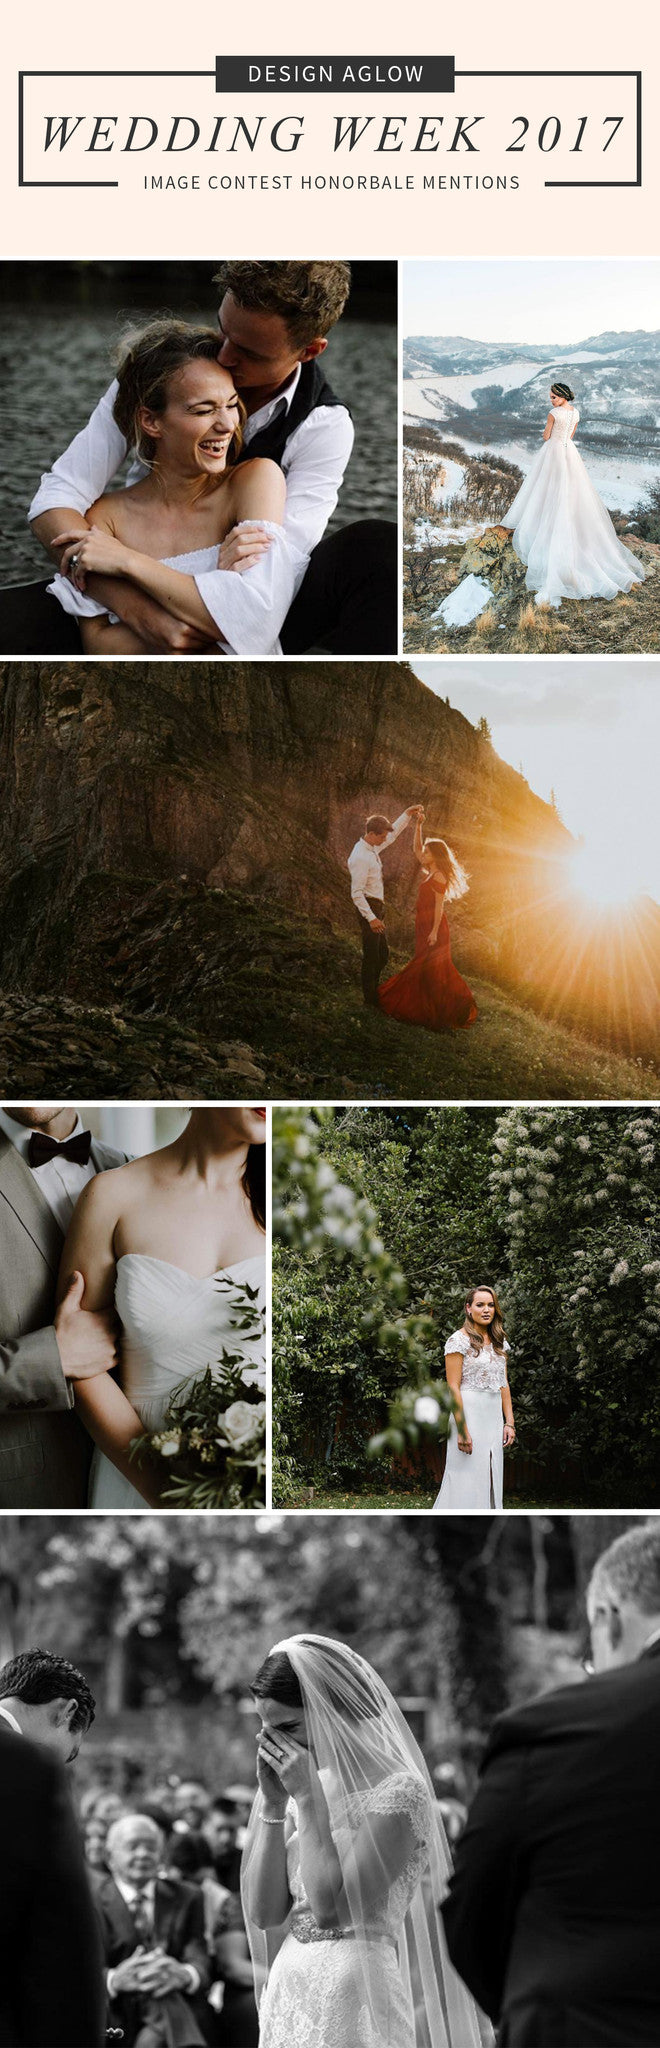 DESIGN AGLOW WEDDING WEEK 2017 IMAGE CONTEST HONORABLE MENTIONS